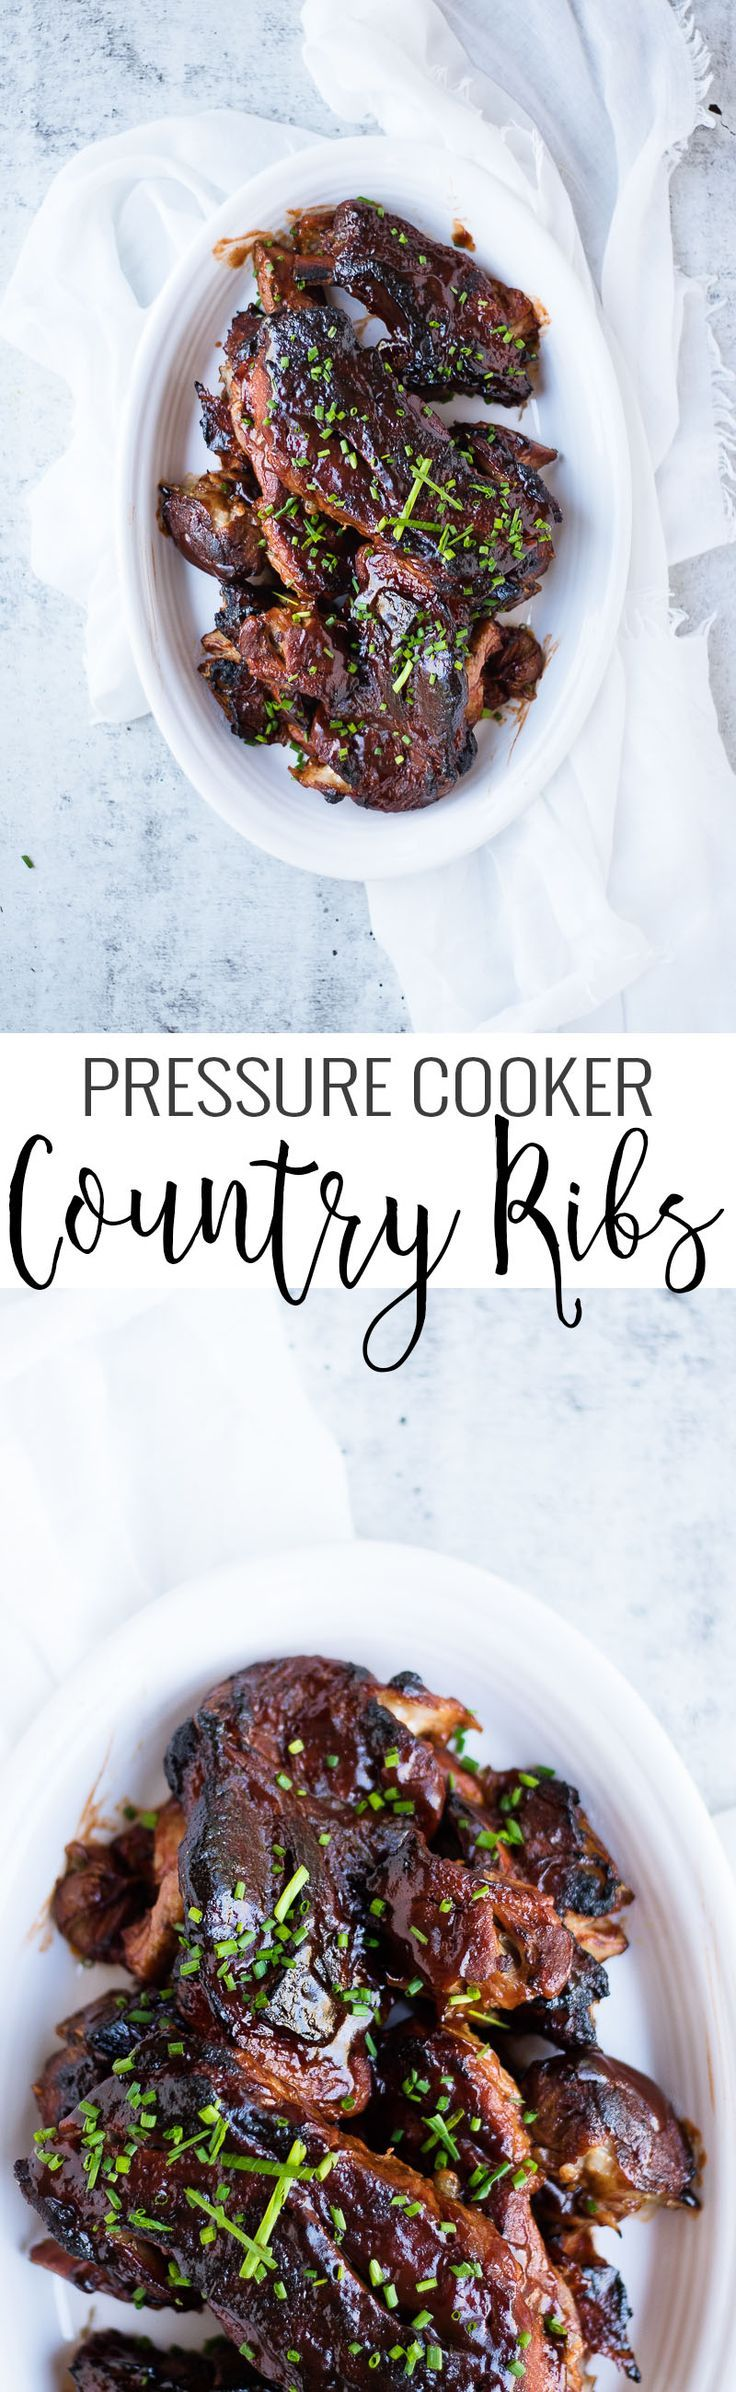 Pressure Cooker Country Ribs | pressure cooker recipes | pressure cooker rib recipe | how to make homemade ribs | how to cook ribs in a pressure cooker | summer barbecue recipes | how to cook tender ribs | how to cook country ribs | homemade country ribs